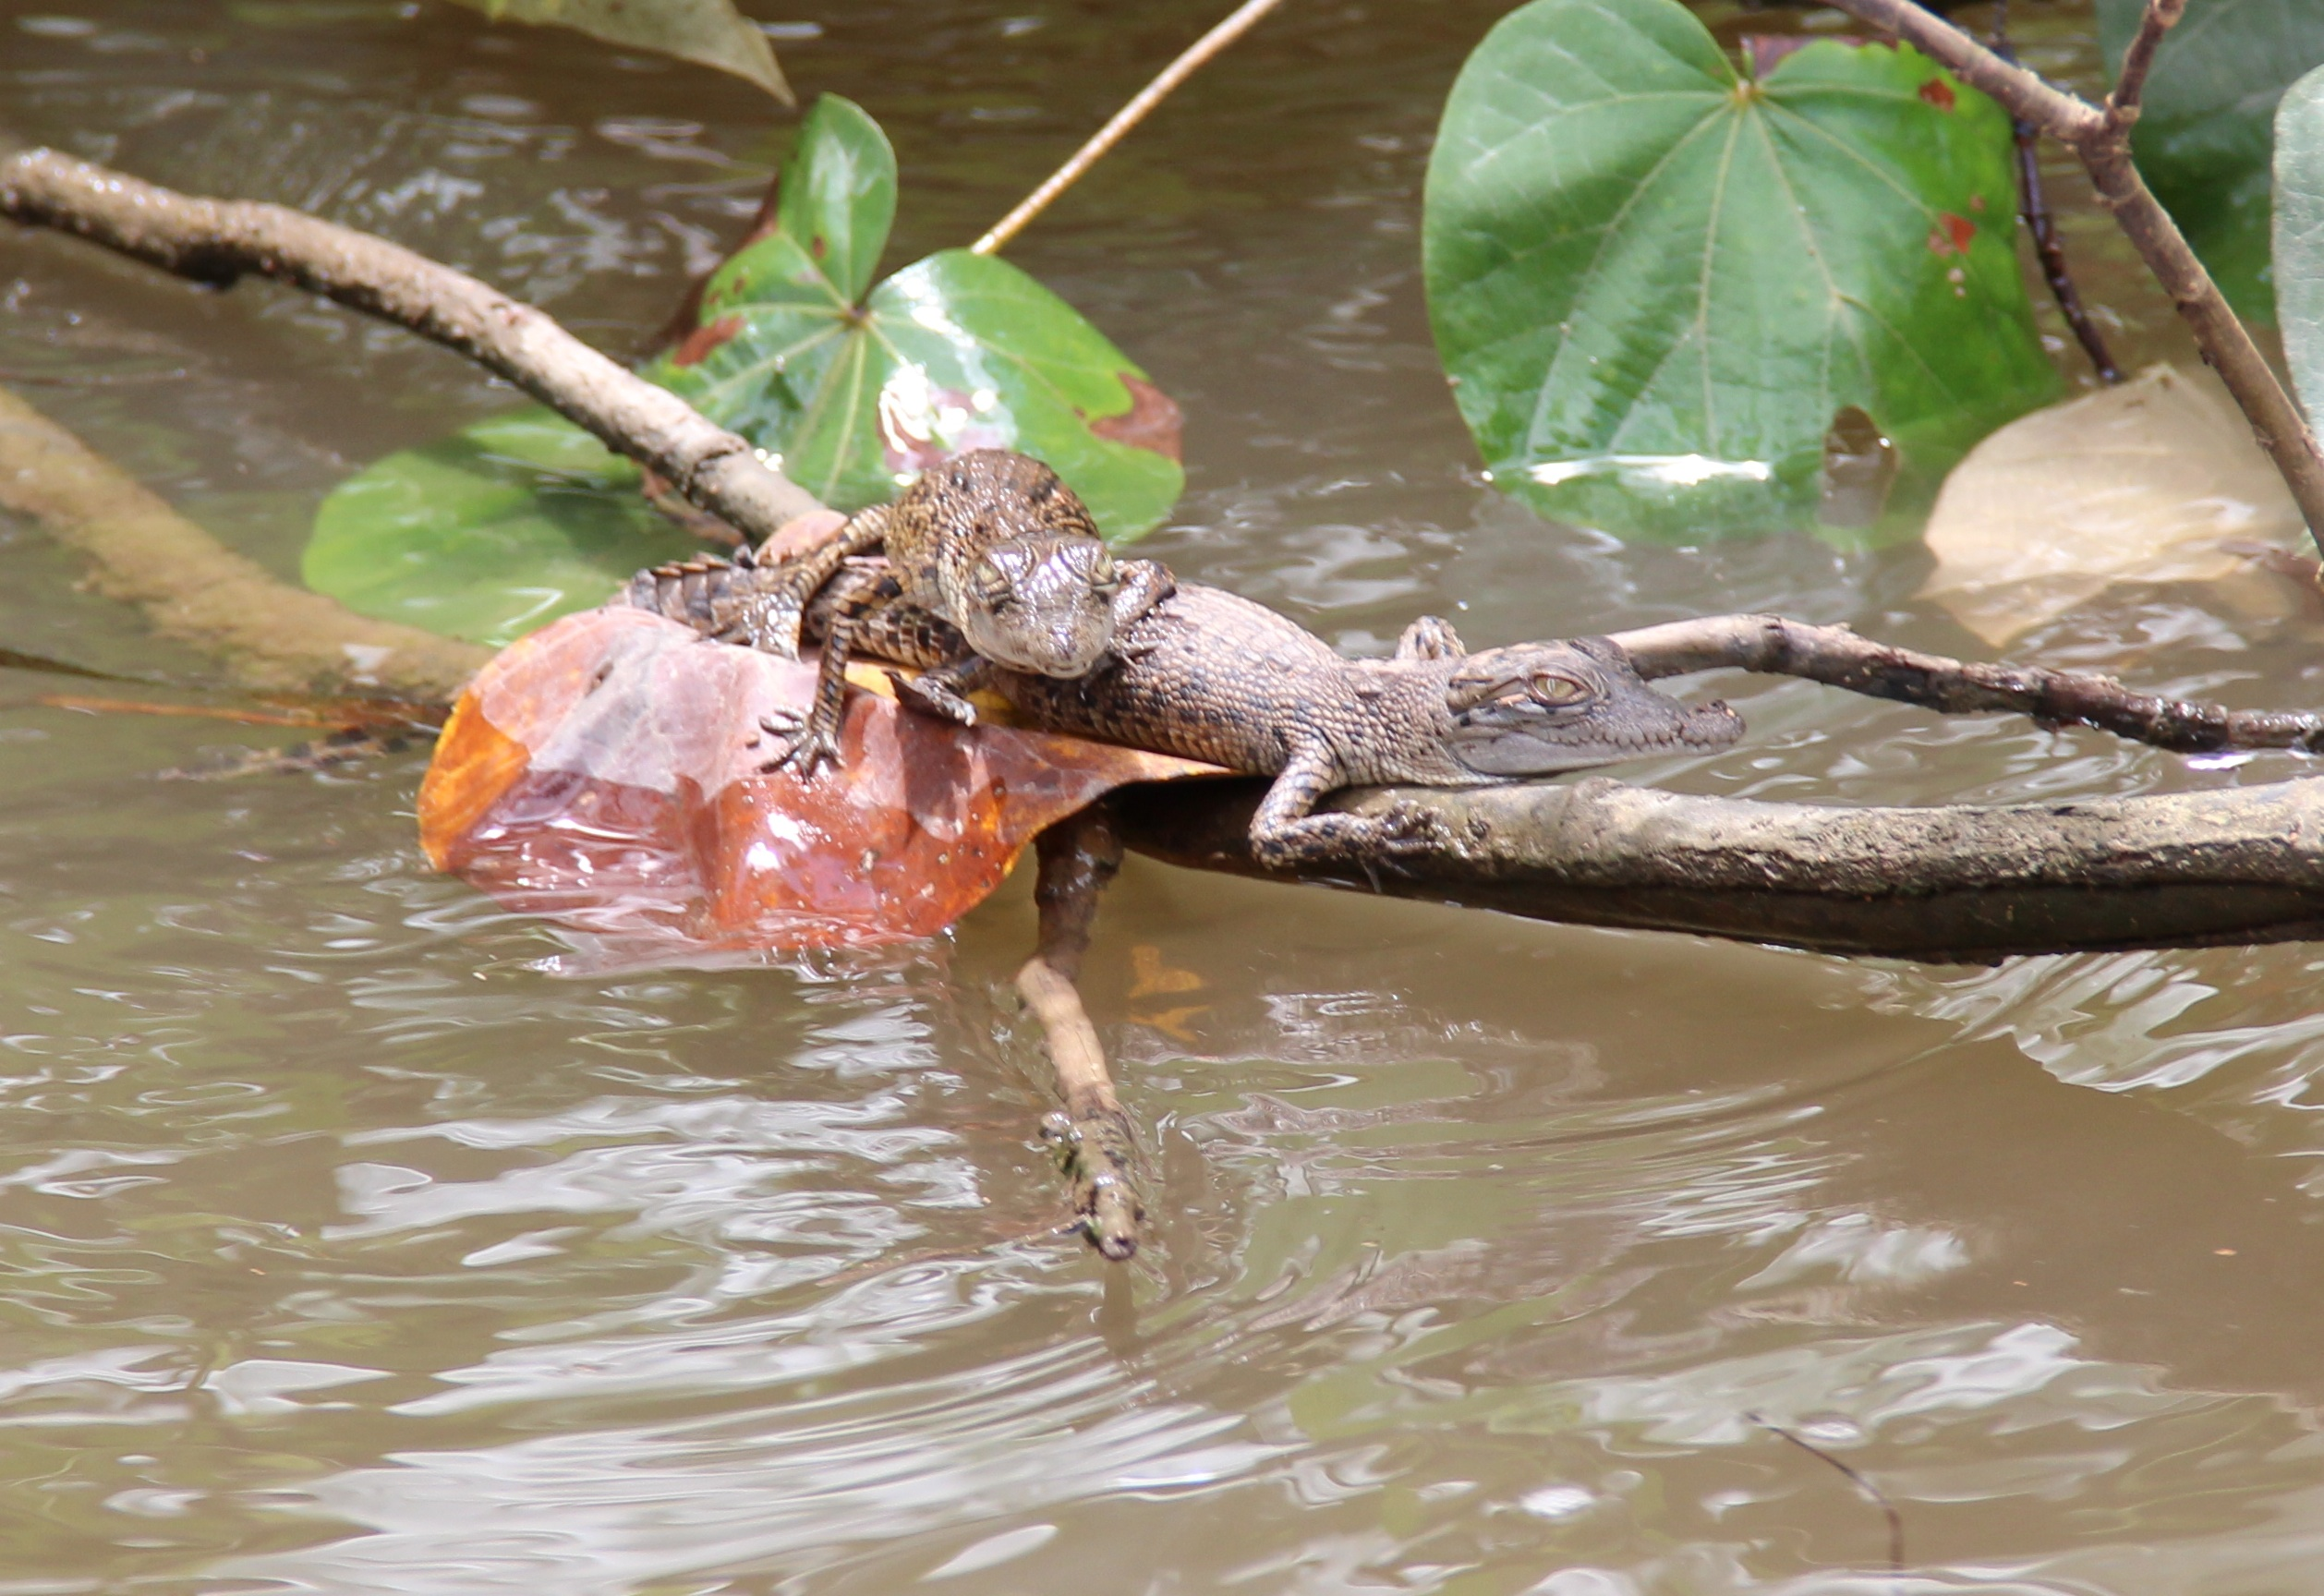 Baby Crocodiles in the Daintree River, Queensland